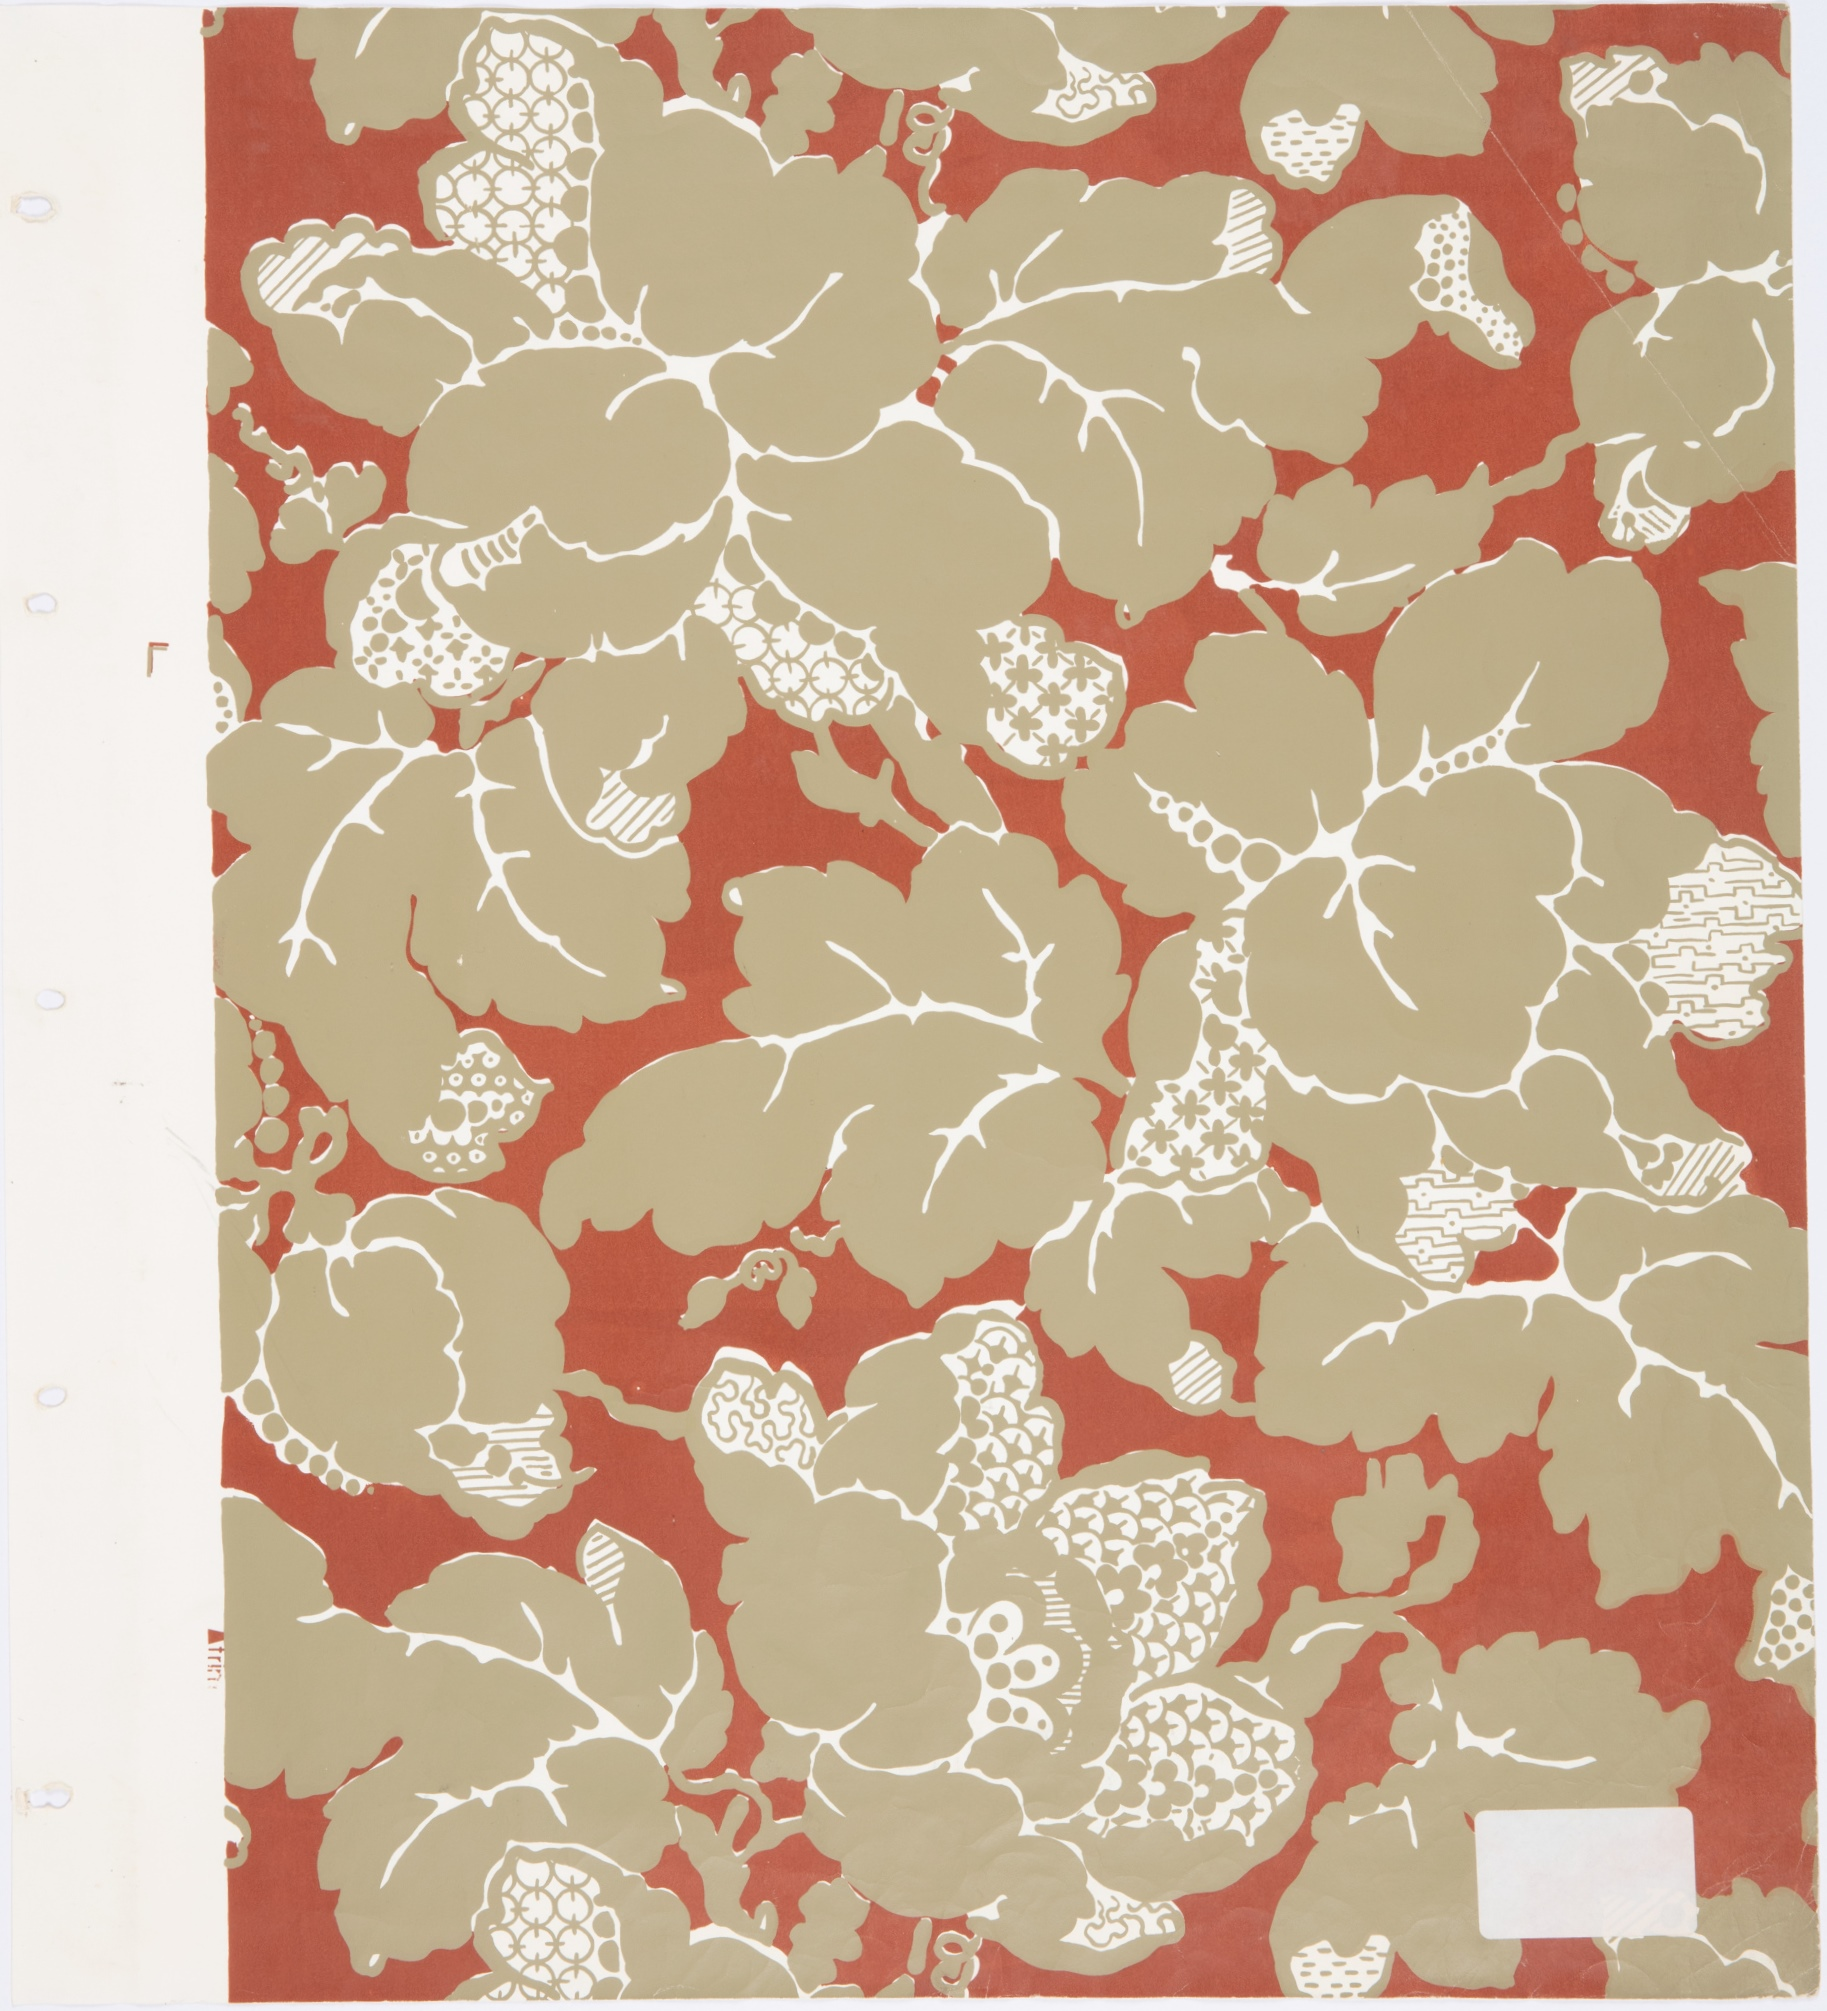 Wallpaper frieze recreated for Aberglasslyn House, Hunter Valley